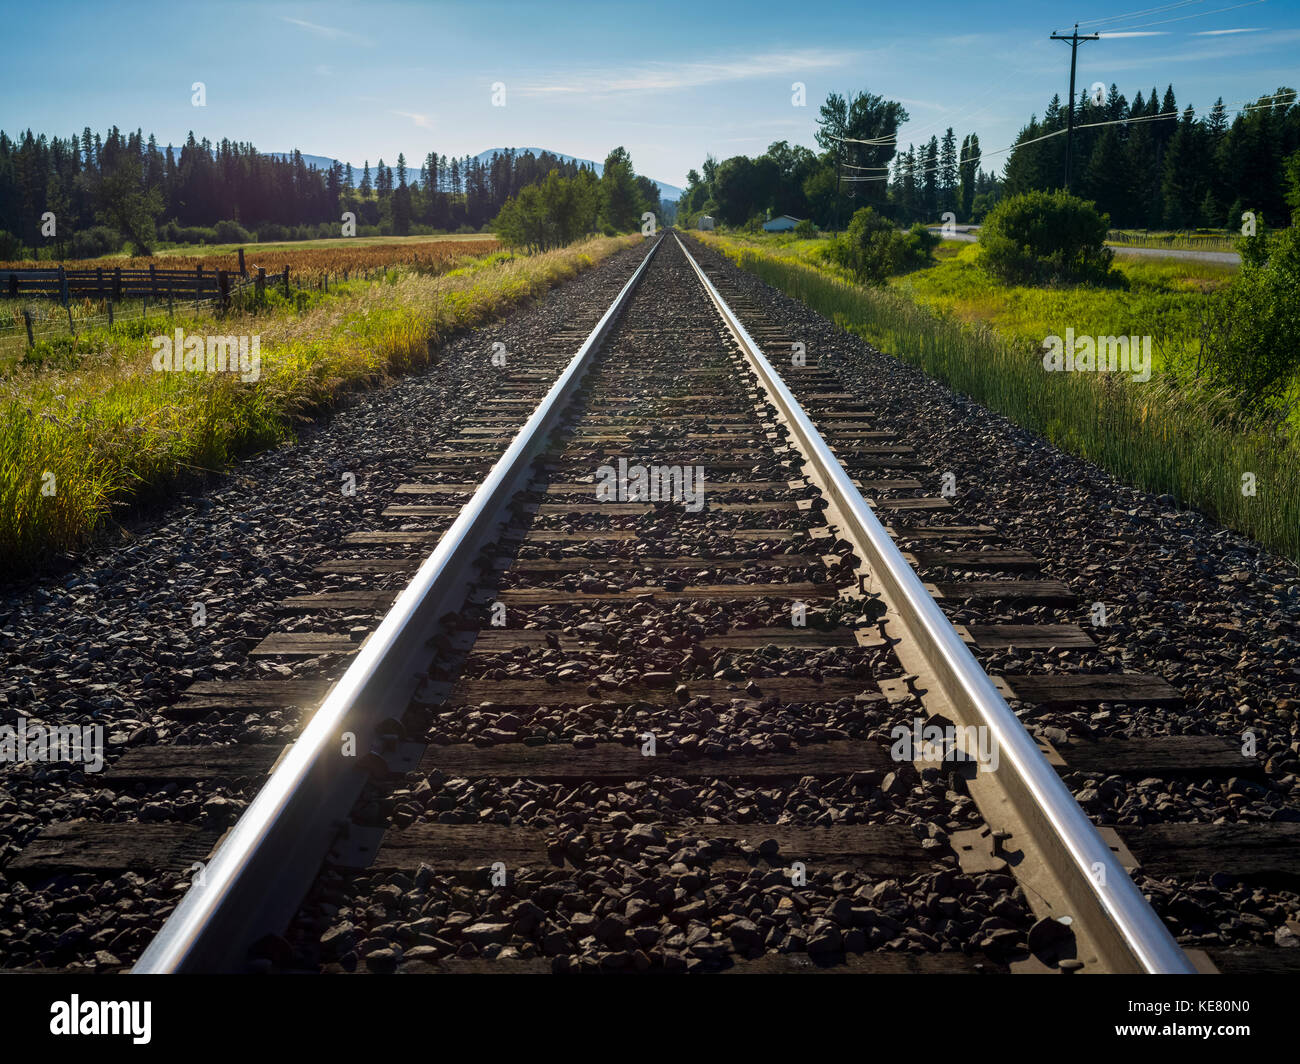 Close-up of train tracks with the Rocky mountains in the distance; Fernie, British Columbia, Canada - Stock Image